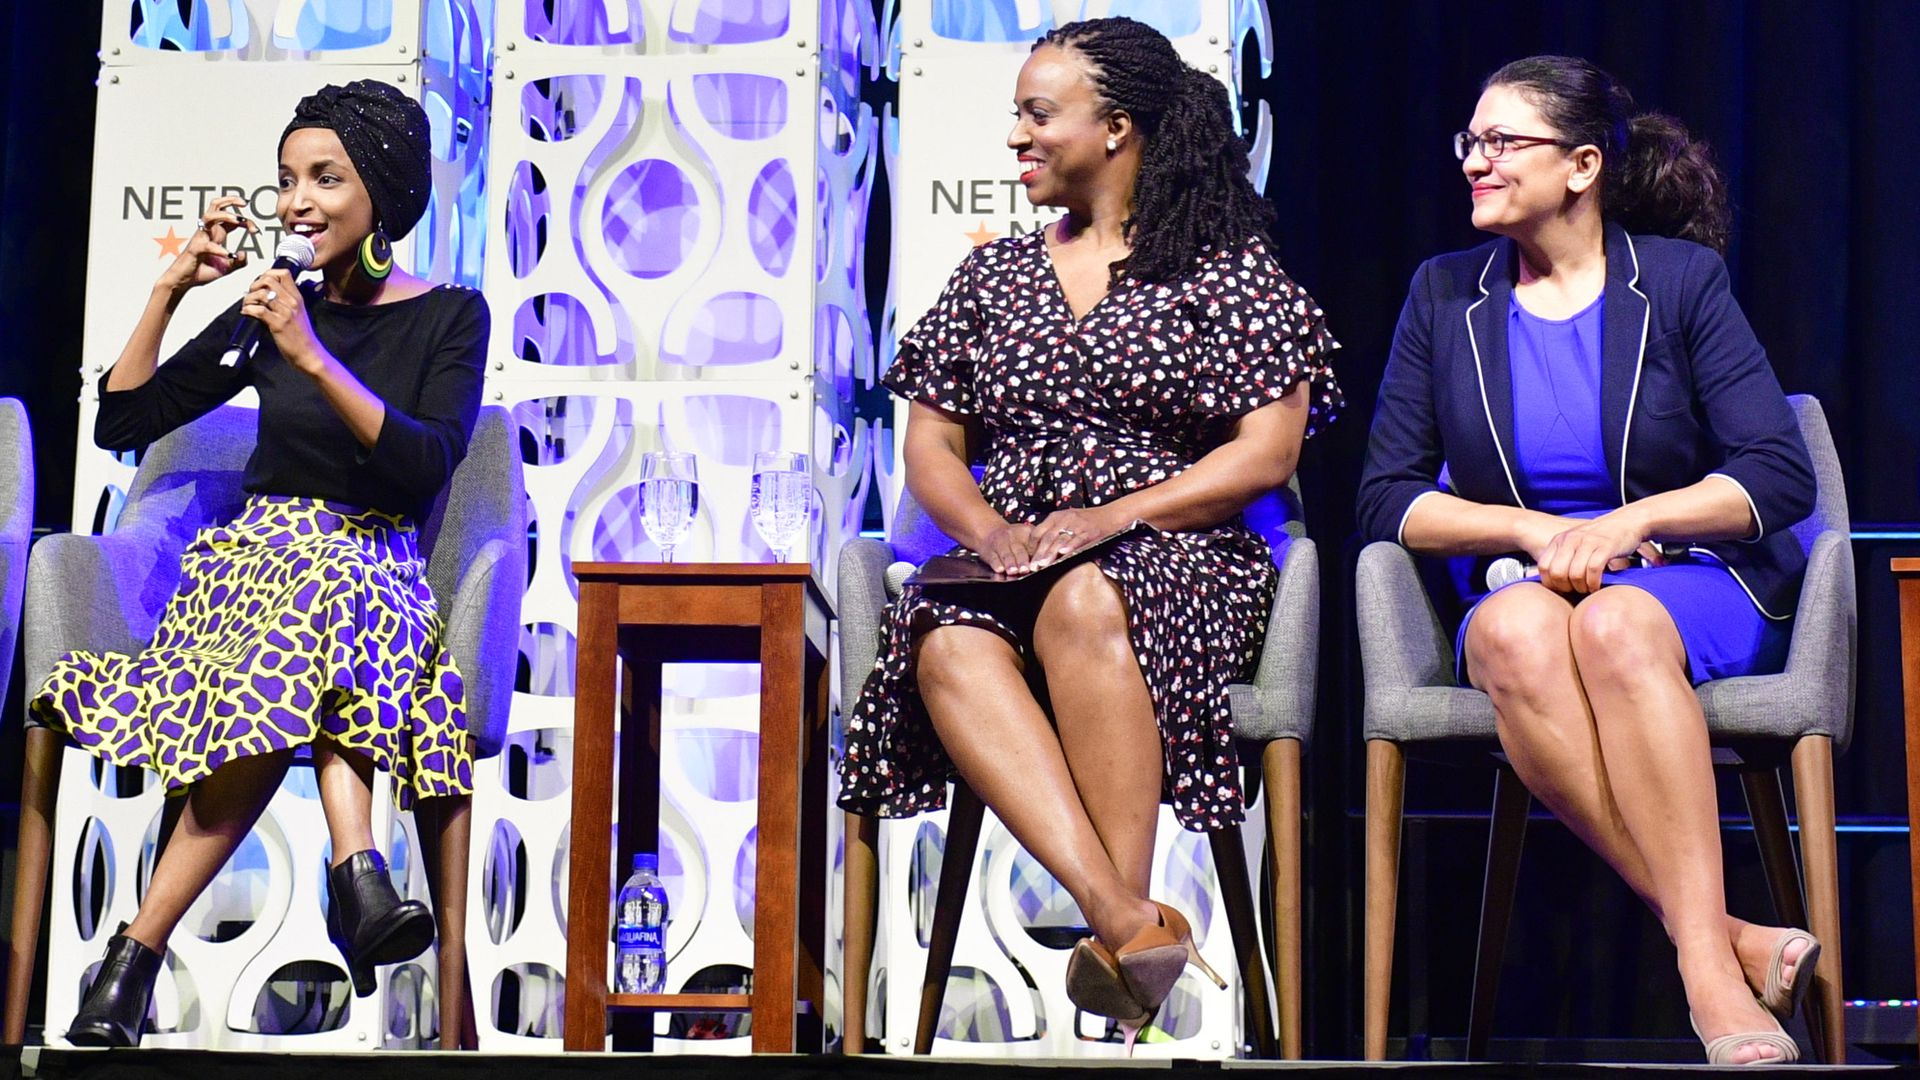 Rep. Ayanna Pressley (D-MA), Rep. Rashida Tlaib (D-MI)  take part in a panel discussion at the Netroots Nation progressive grassroots convention in Philadelphia, PA, on July 13.